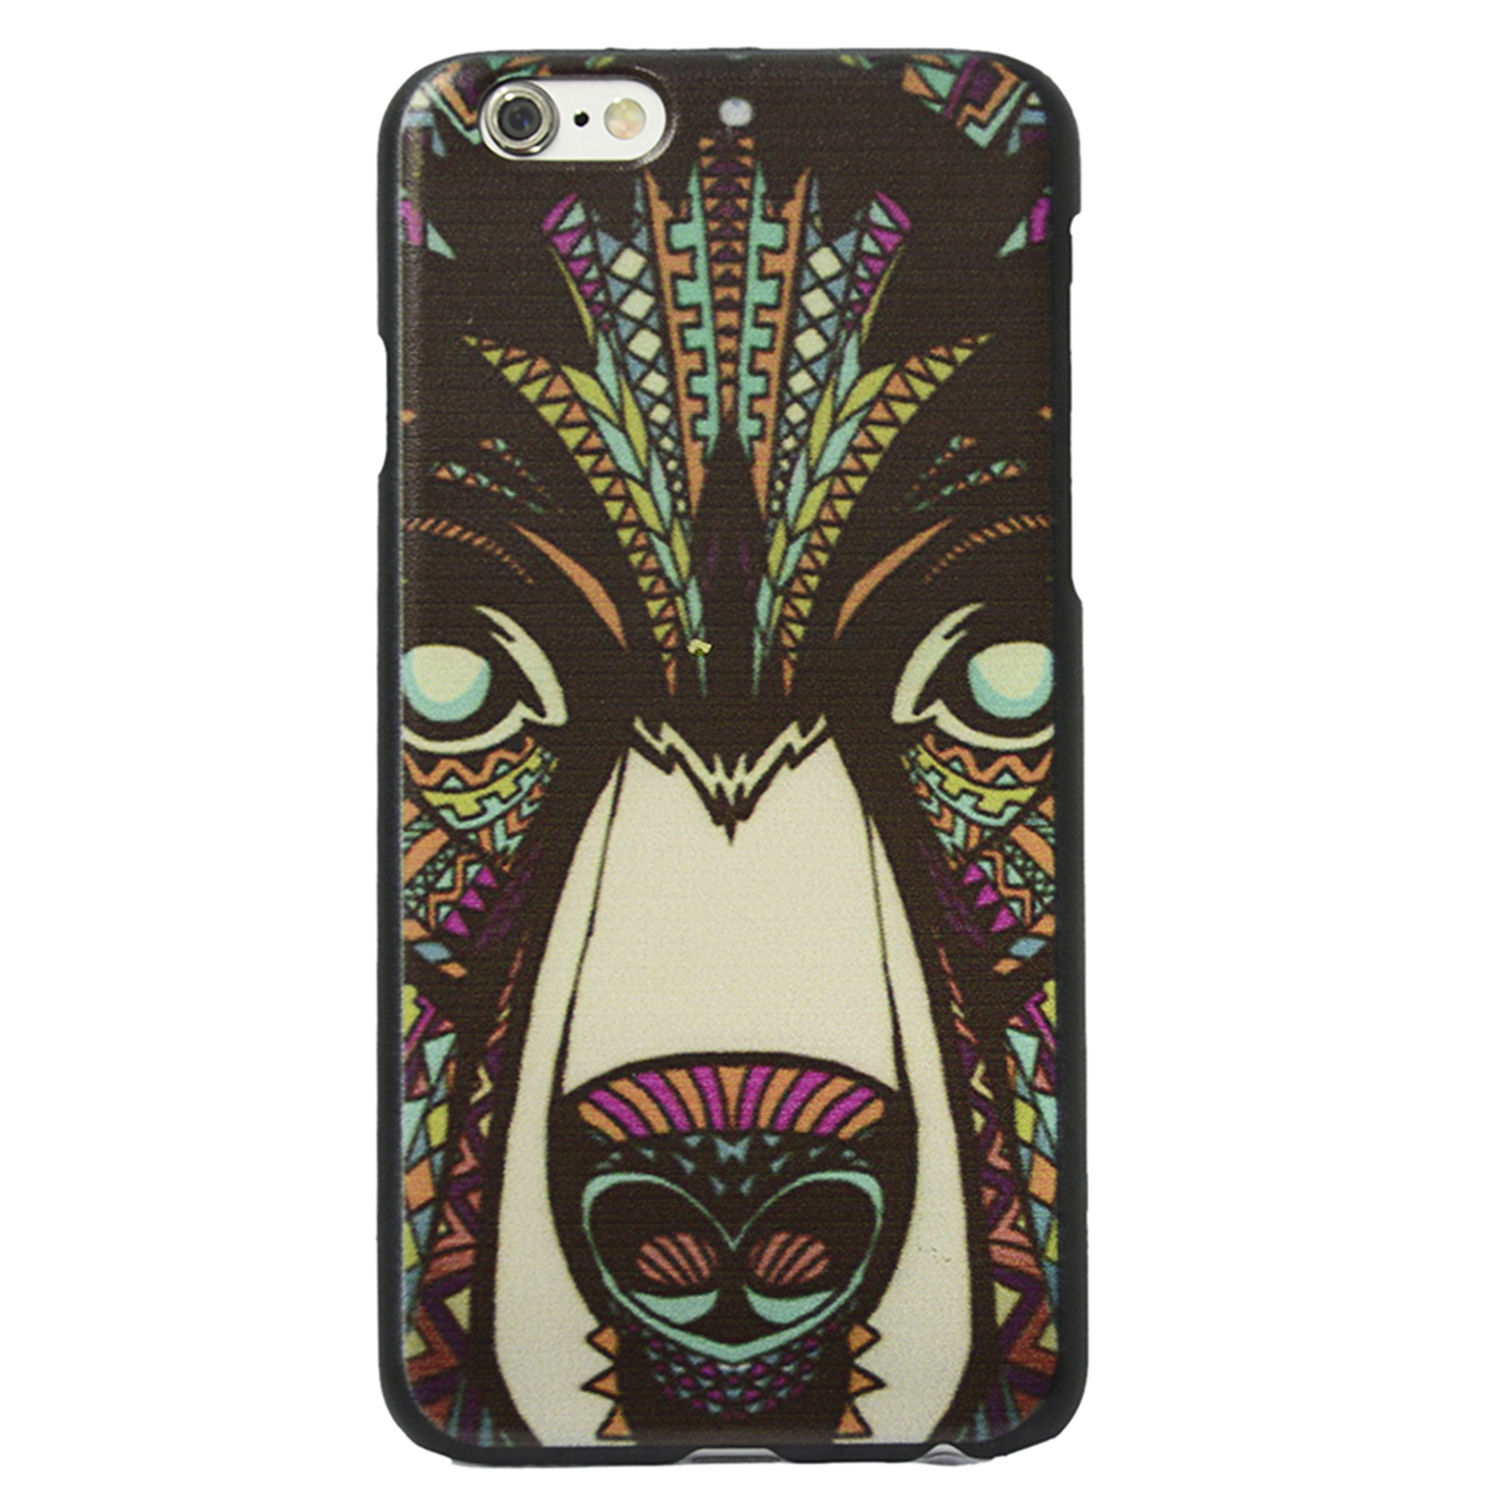 Vococal Protective Case for iPhone 6 Plus Wolf Painted